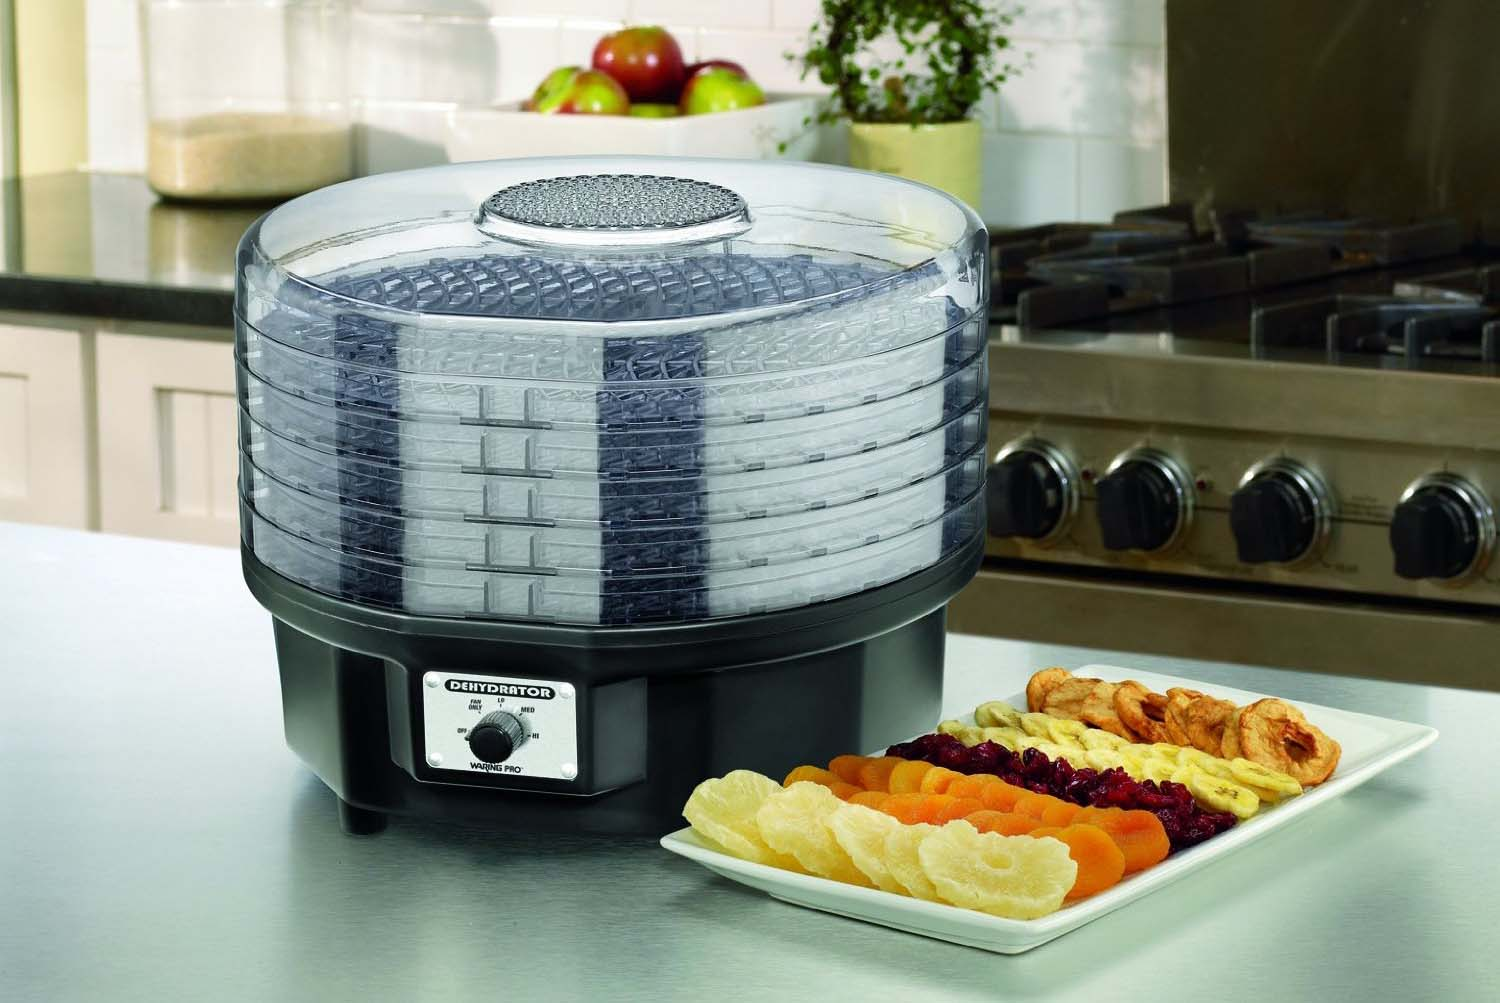 Waring Pro DHR30 Professional Food Dehydrator Review